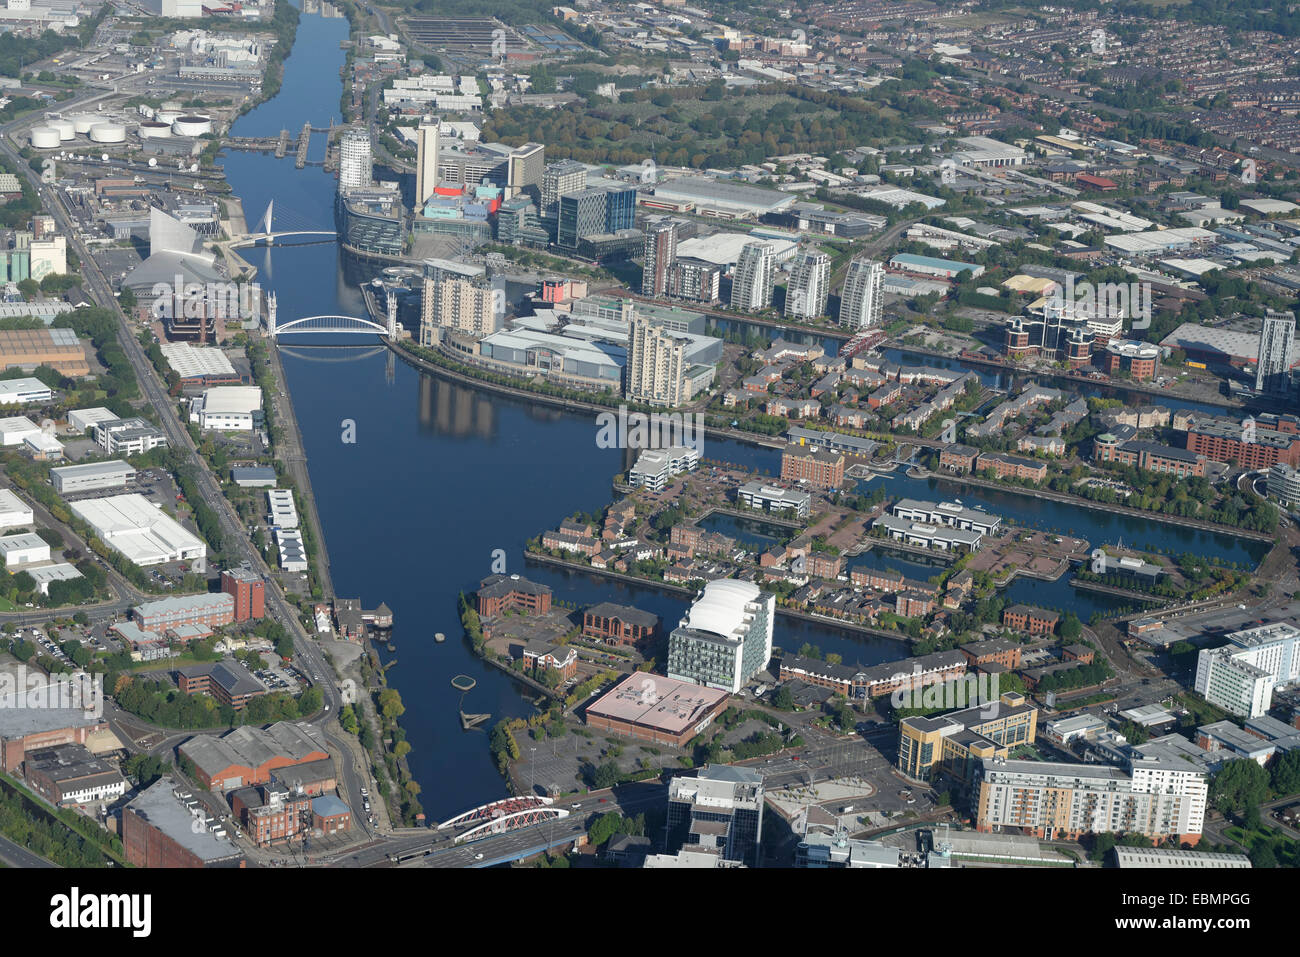 An aerial view of Salford Quays, Manchester - Stock Image